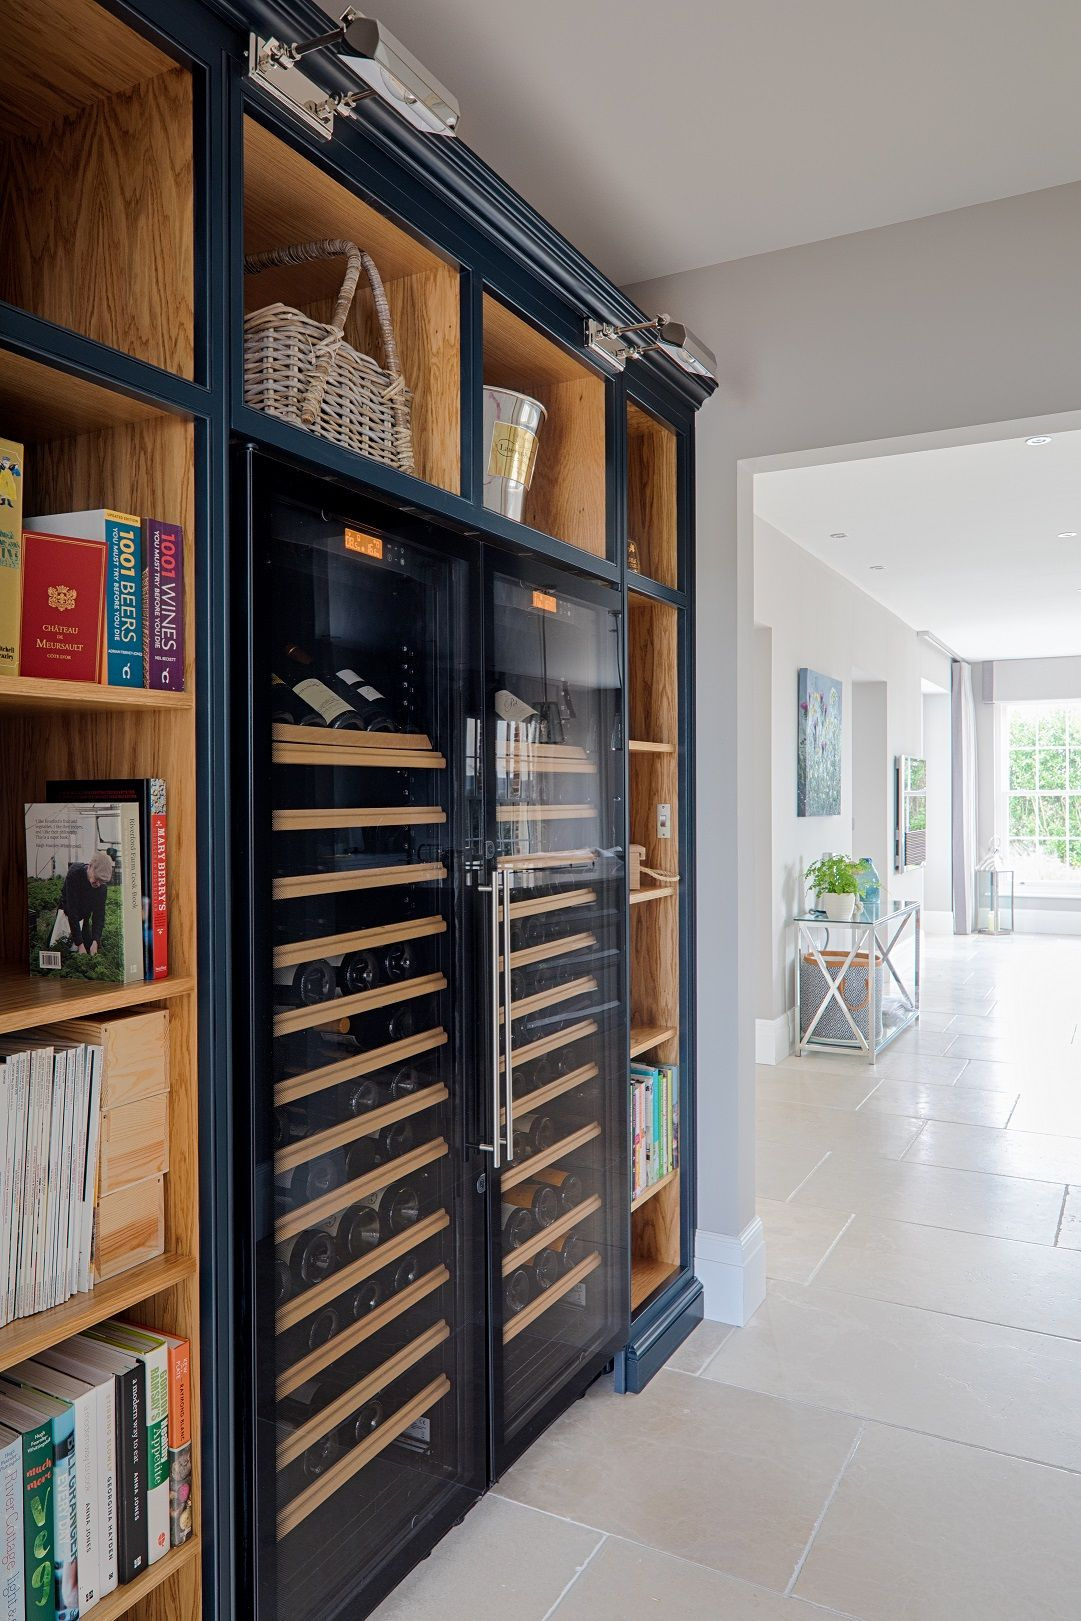 Two Huge Wine Cabinets From Eurocave Neatly And Snugly Grace This